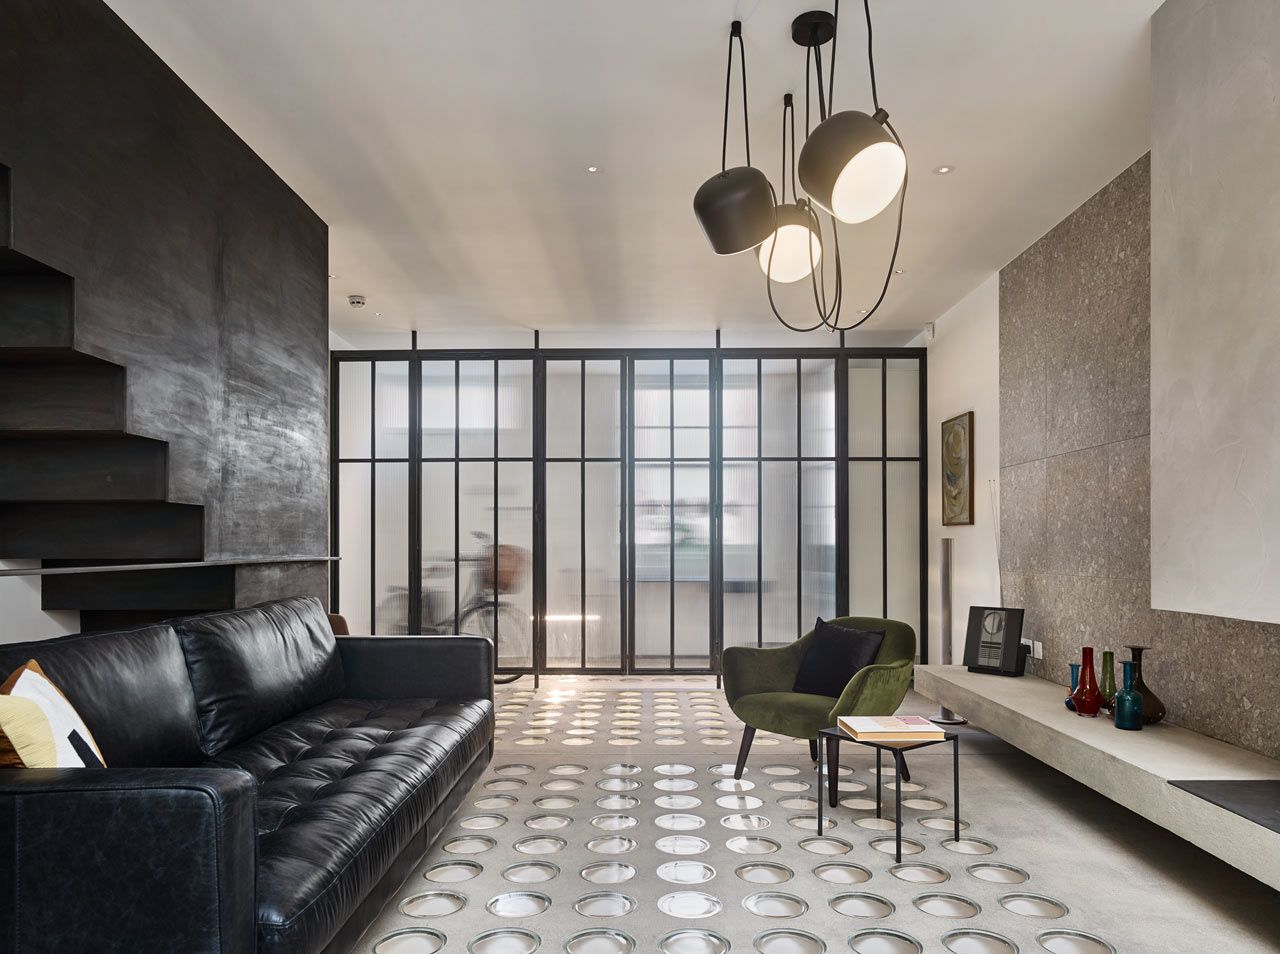 The Perf House Is a Renovated Georgian Terrace House In Lond…